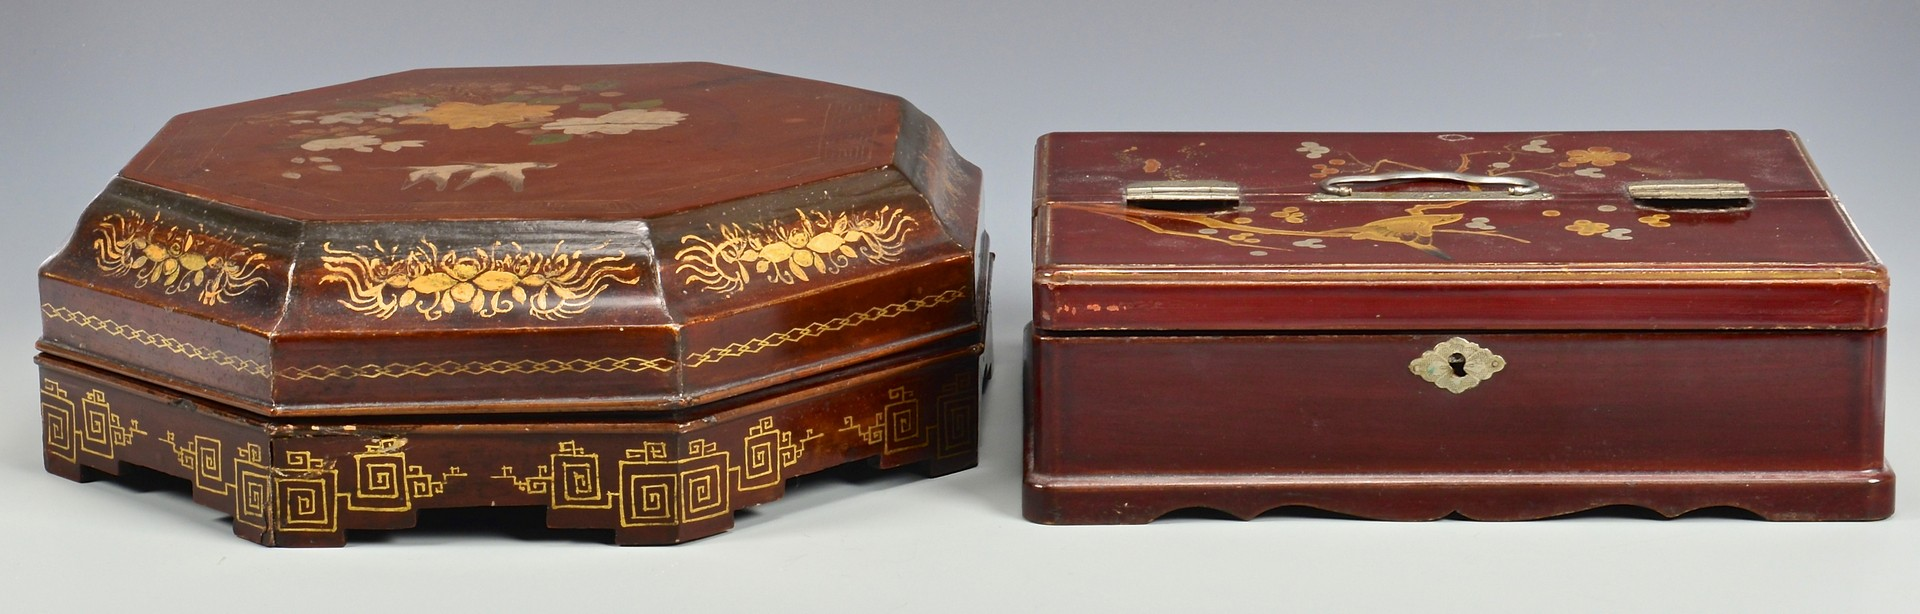 Lot 757: 3 Asian Lacquered Boxes